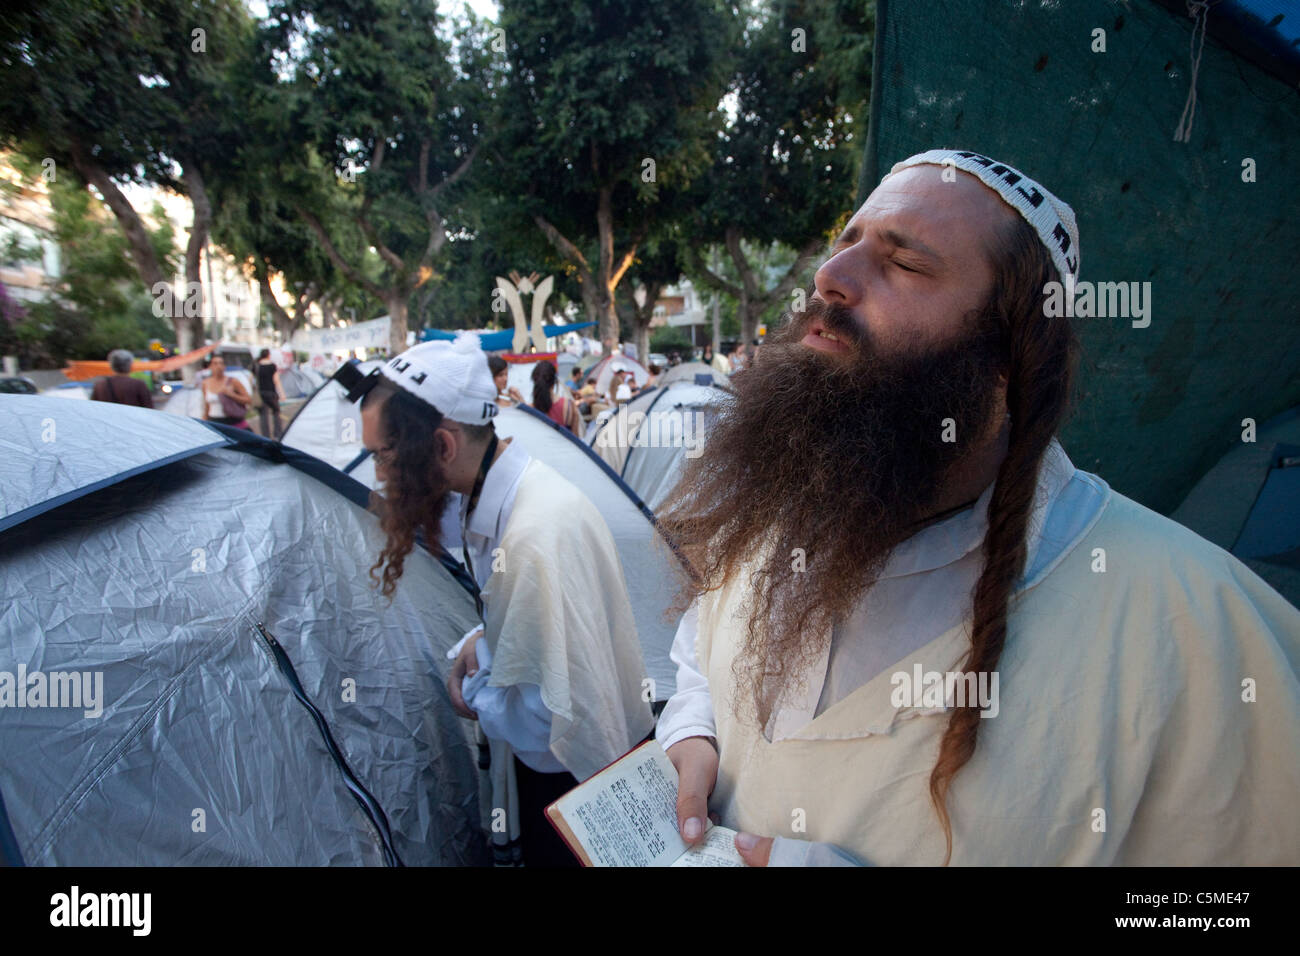 Followers of the Breslov Hassidic Jewish movement praying in the Tent City compound in Rothschild avenue & Followers of the Breslov Hassidic Jewish movement praying in the ...